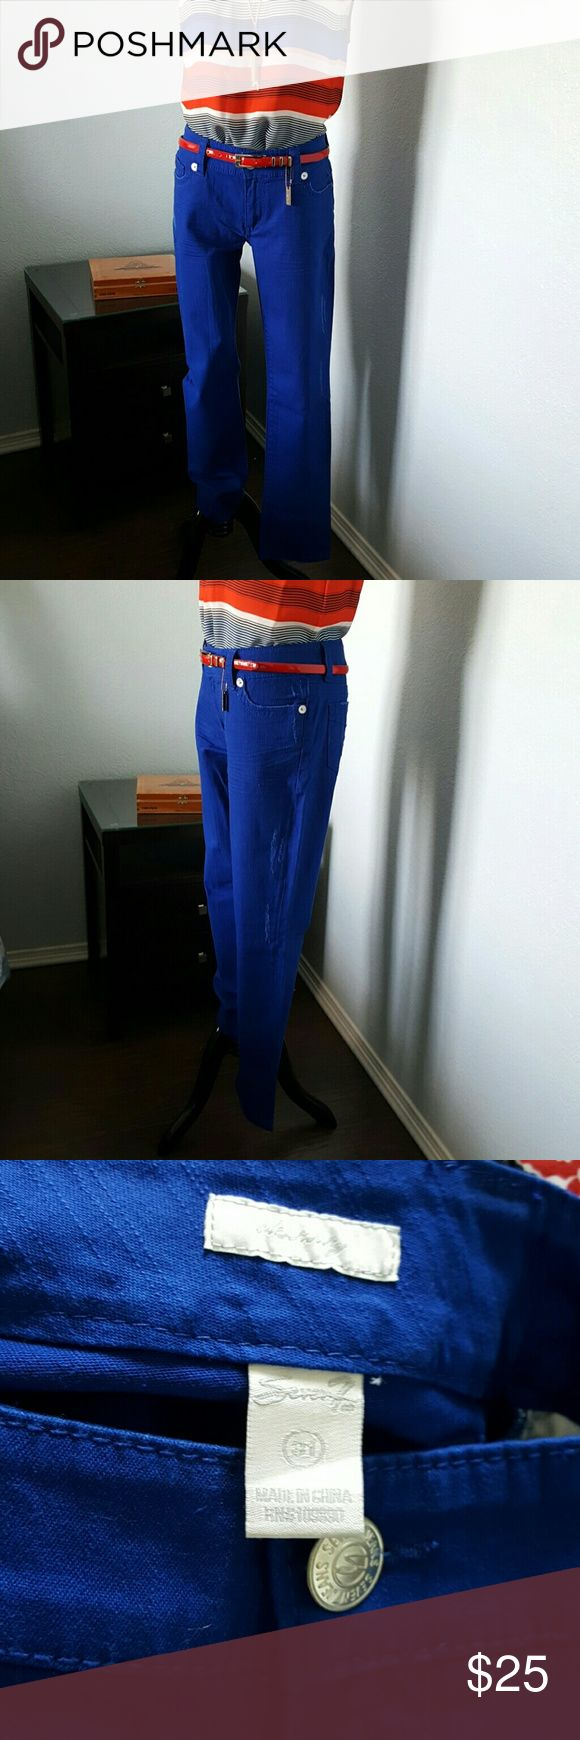 """Seven distressed Cobalt jeans Cobalt distressed  jeans, seven brand  , inseam 30"""" beautiful color for summer, new never worn!! Blouse & belt not include Seven7 Jeans Straight Leg"""